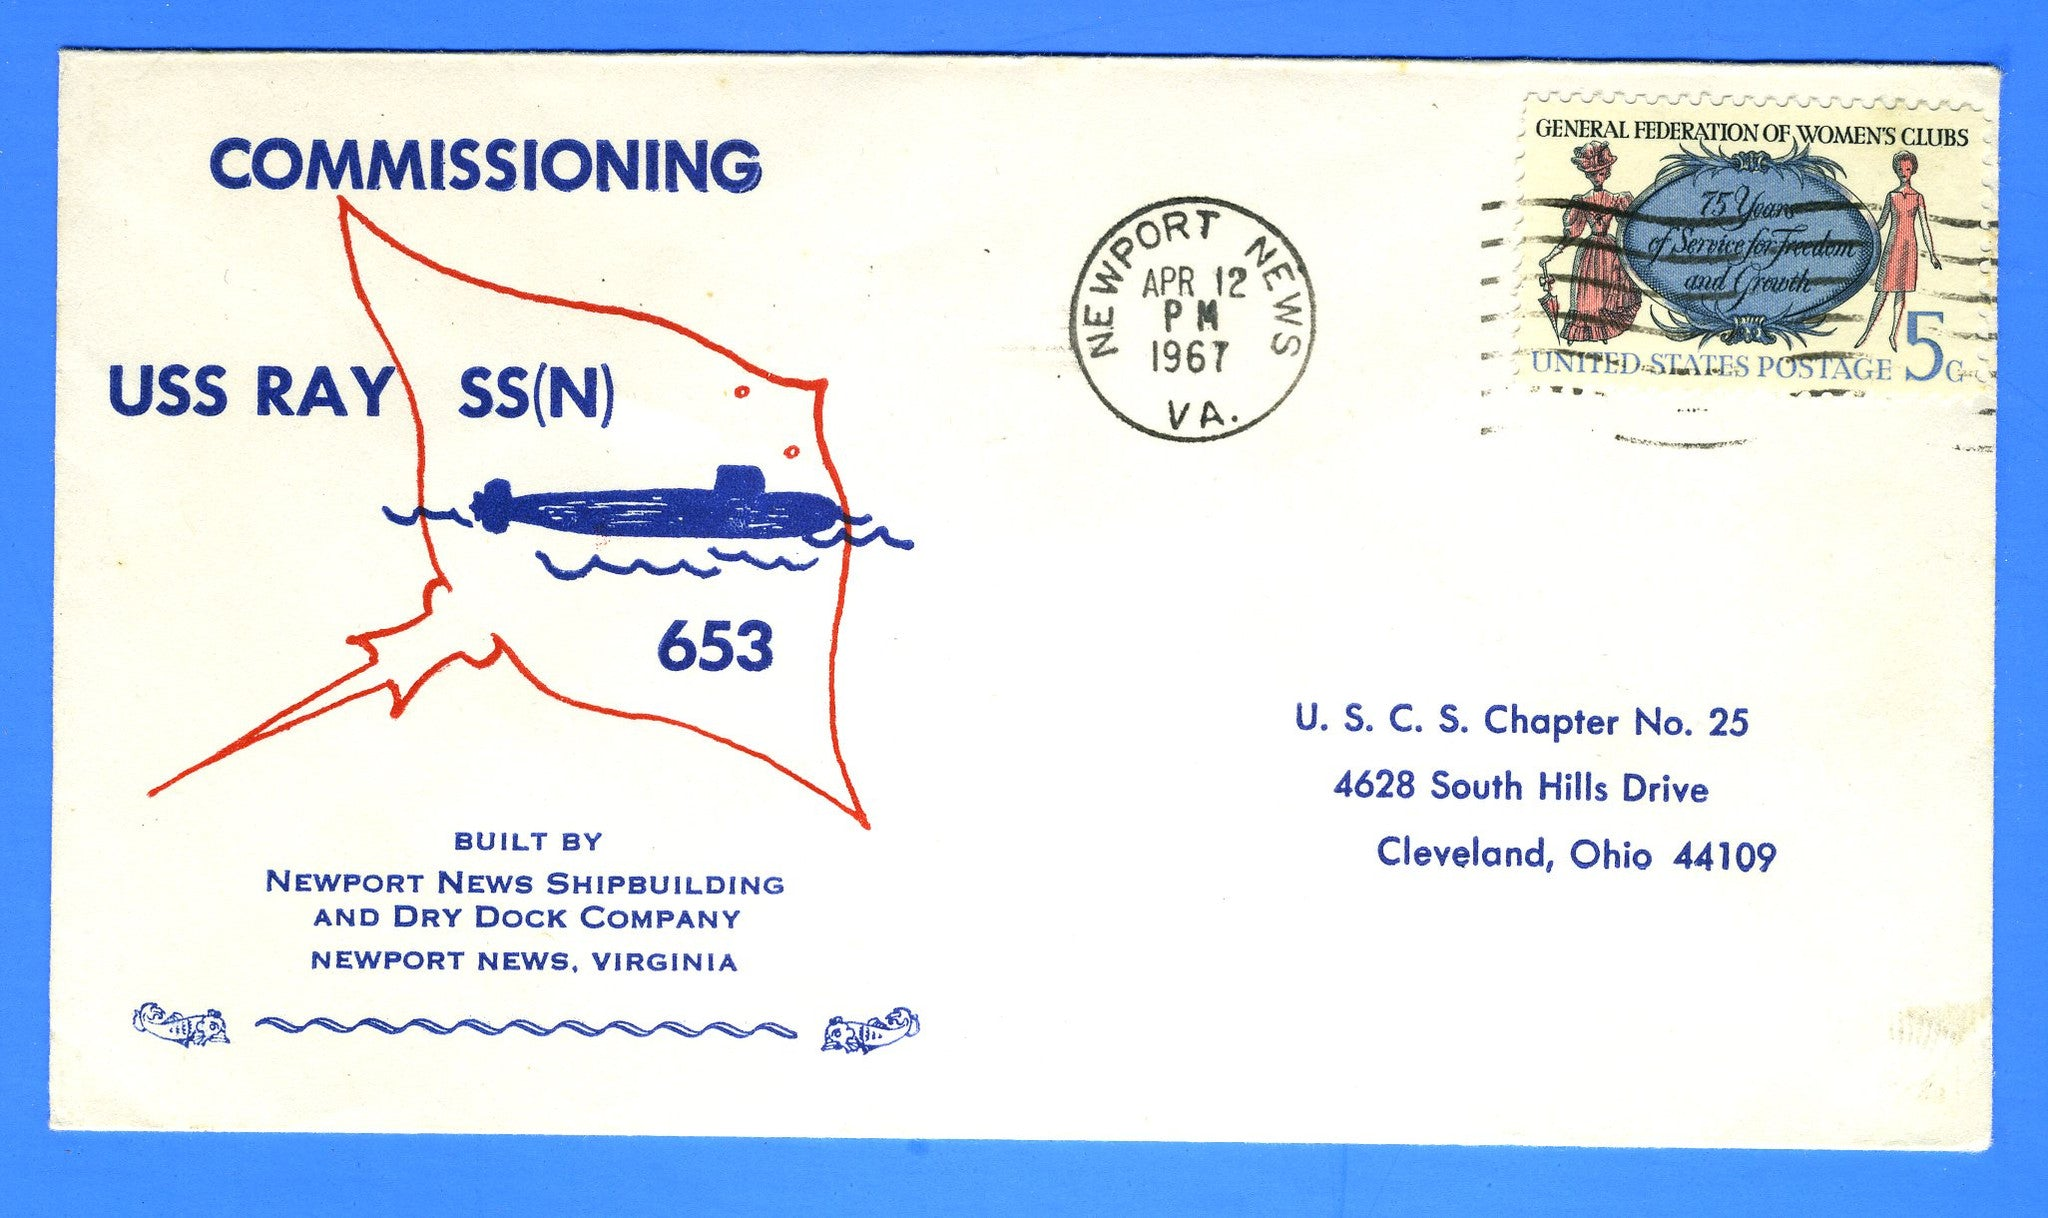 USS Ray SSN-653 Commissioning April 12, 1967